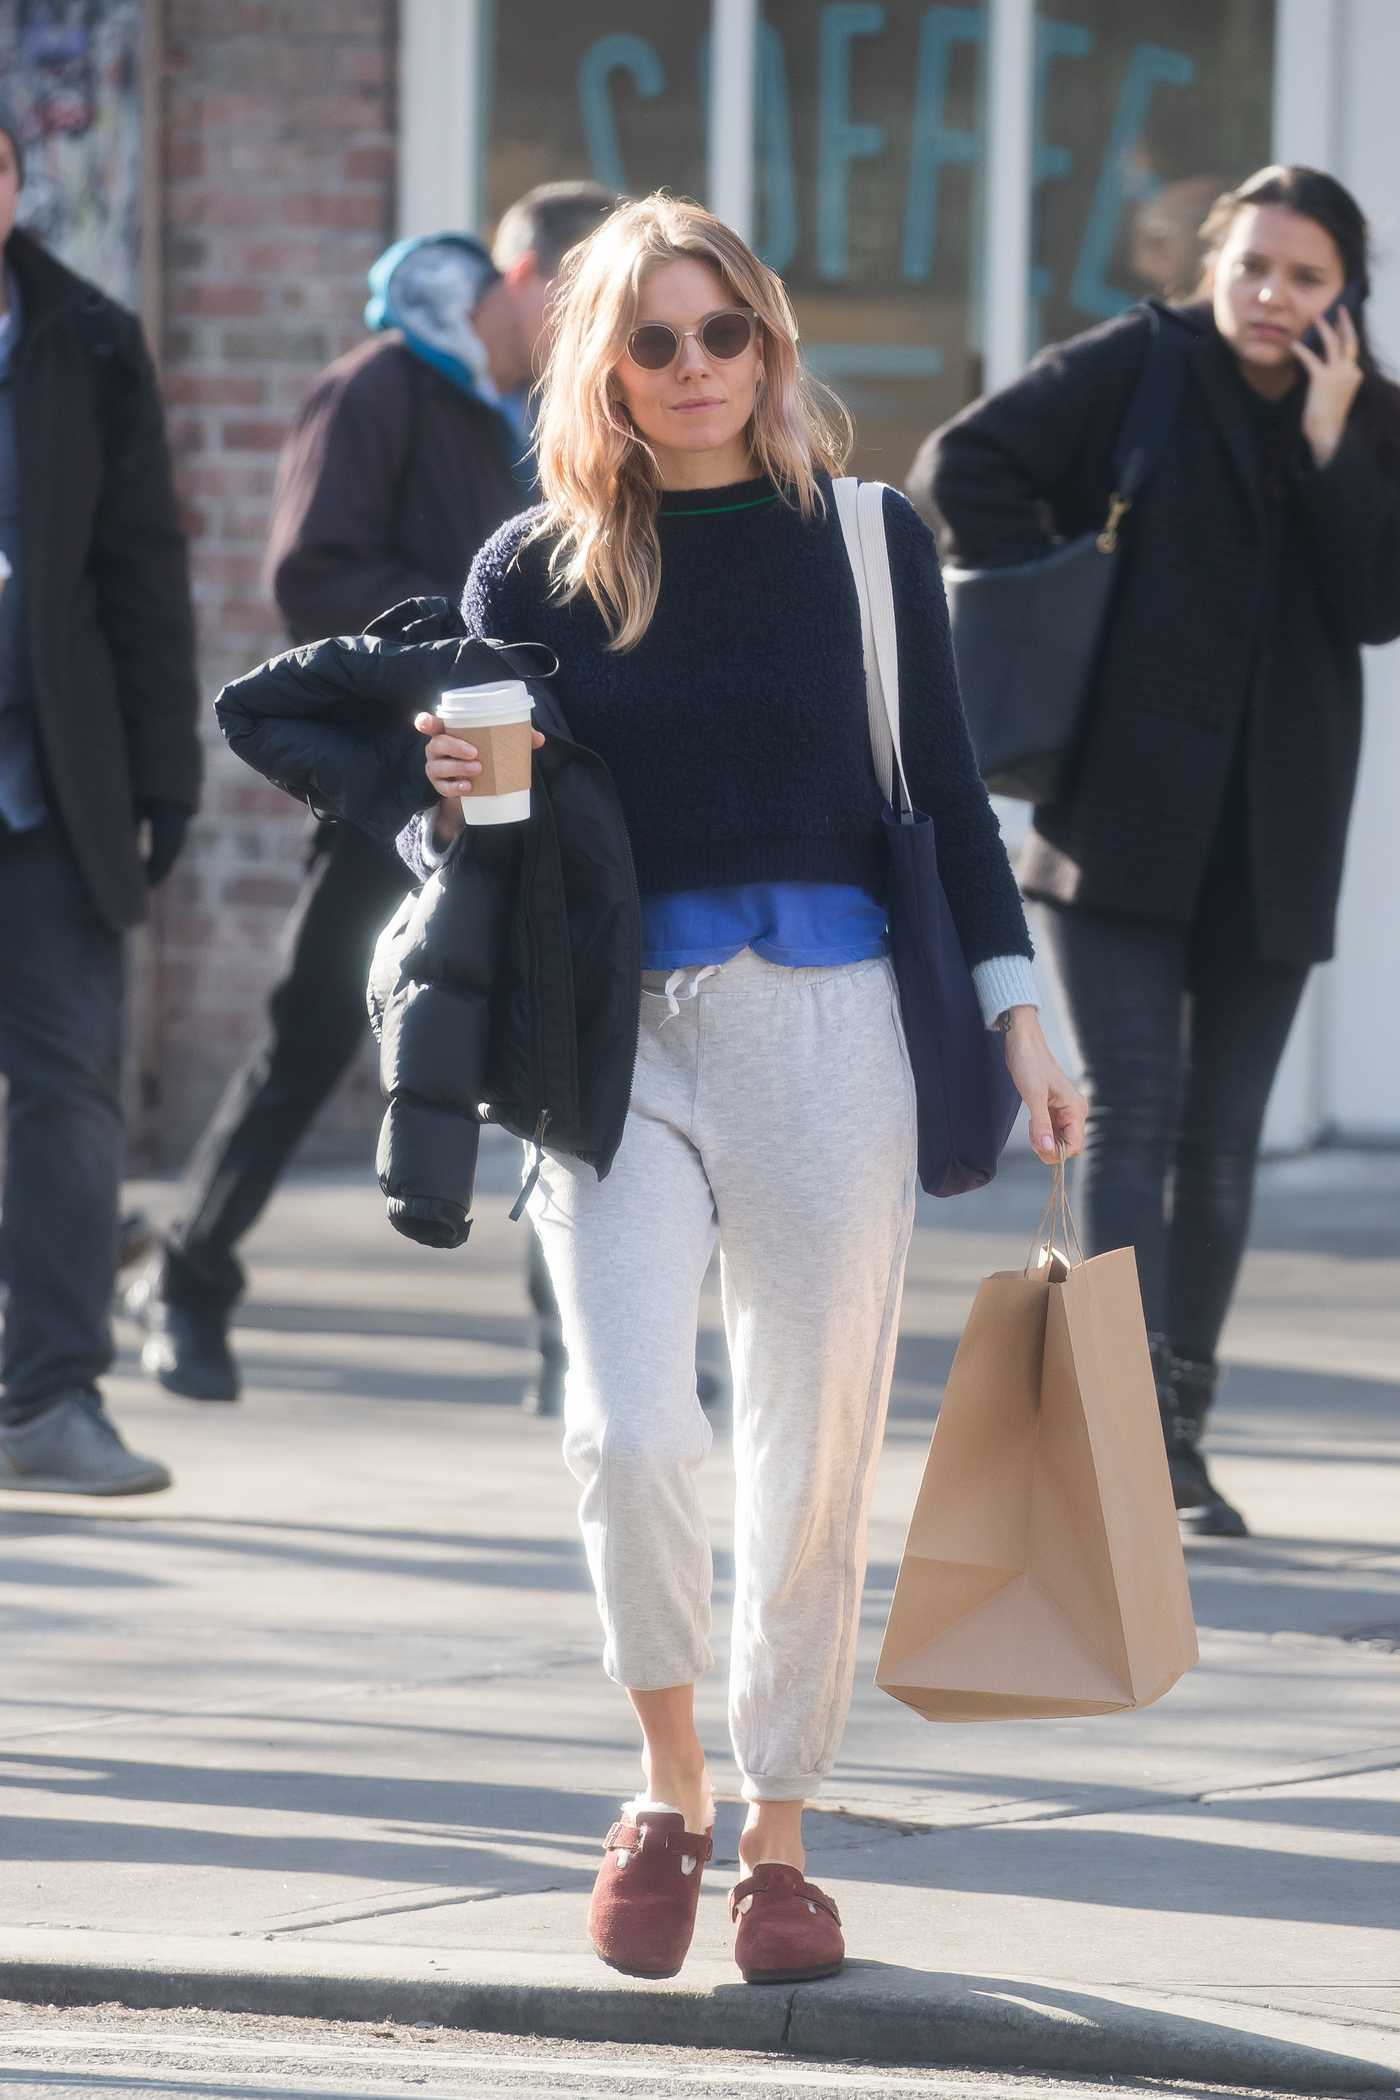 Sienna Miller in a Gray Sweatpants Goes Shopping in New York City 02/15/2019